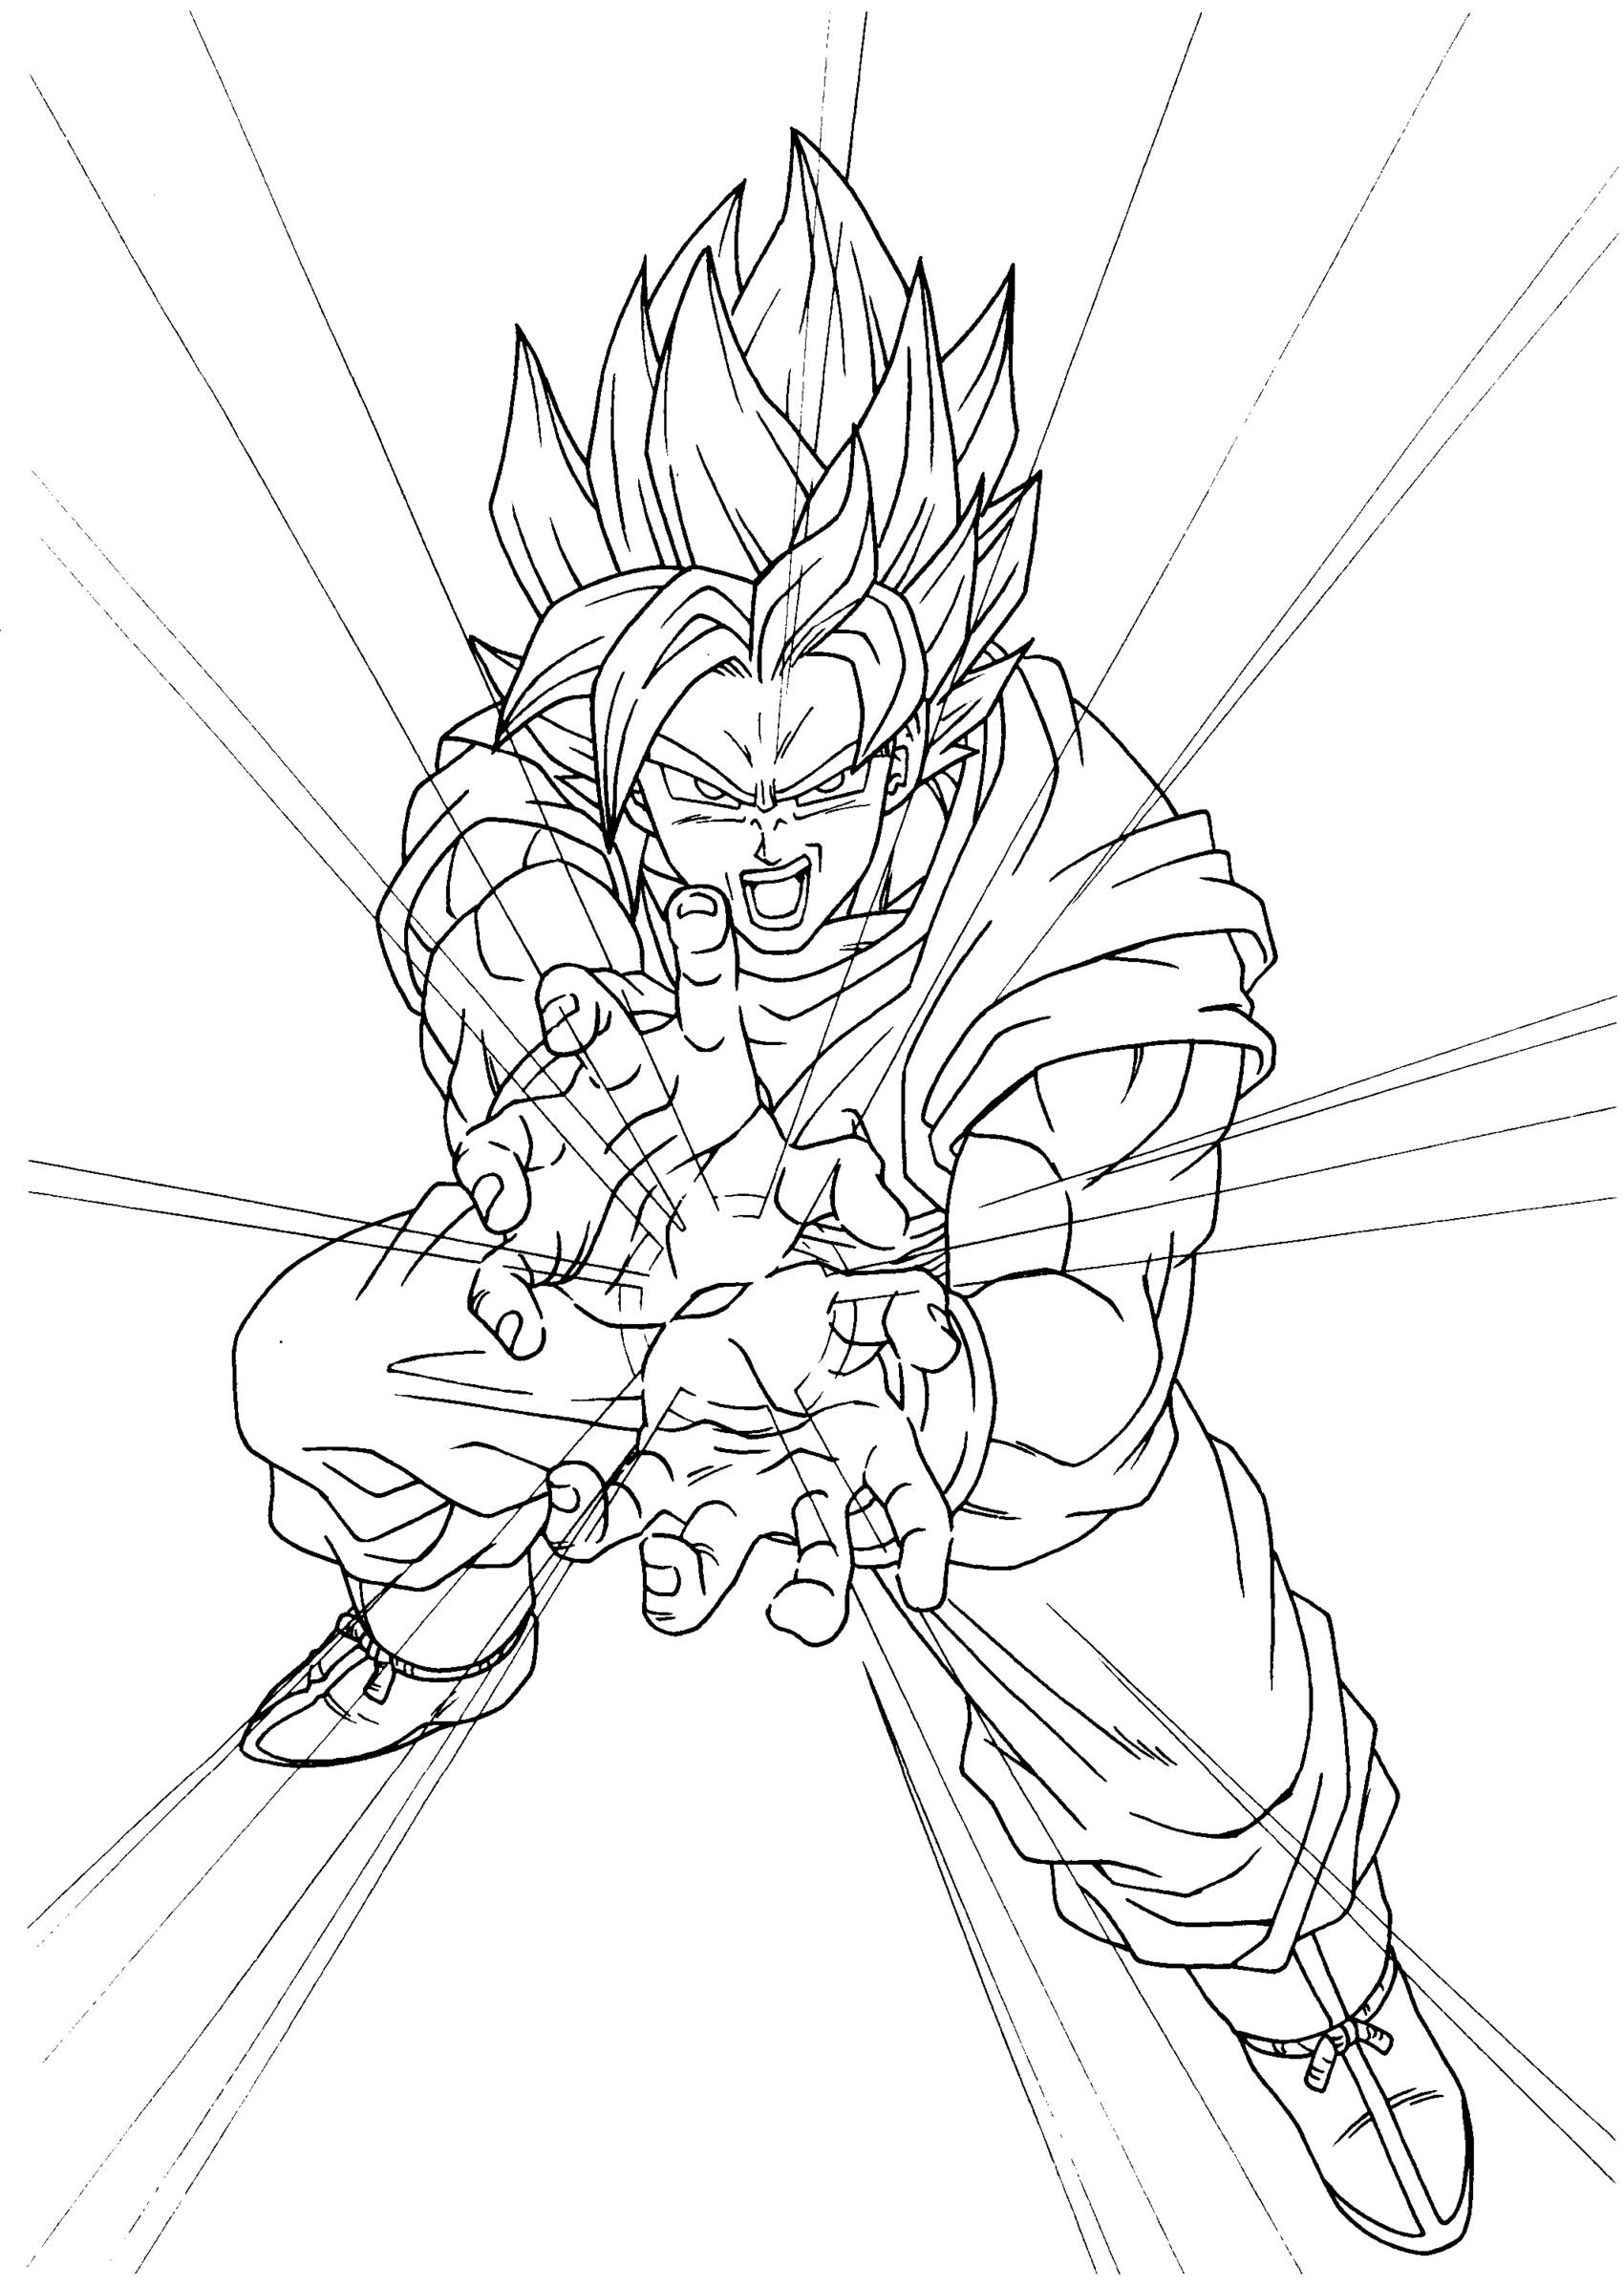 Coloriages dragon ball z 5 coloriage dragon ball z coloriages pour enfants - Coloriage dragon ball z sangoku ...